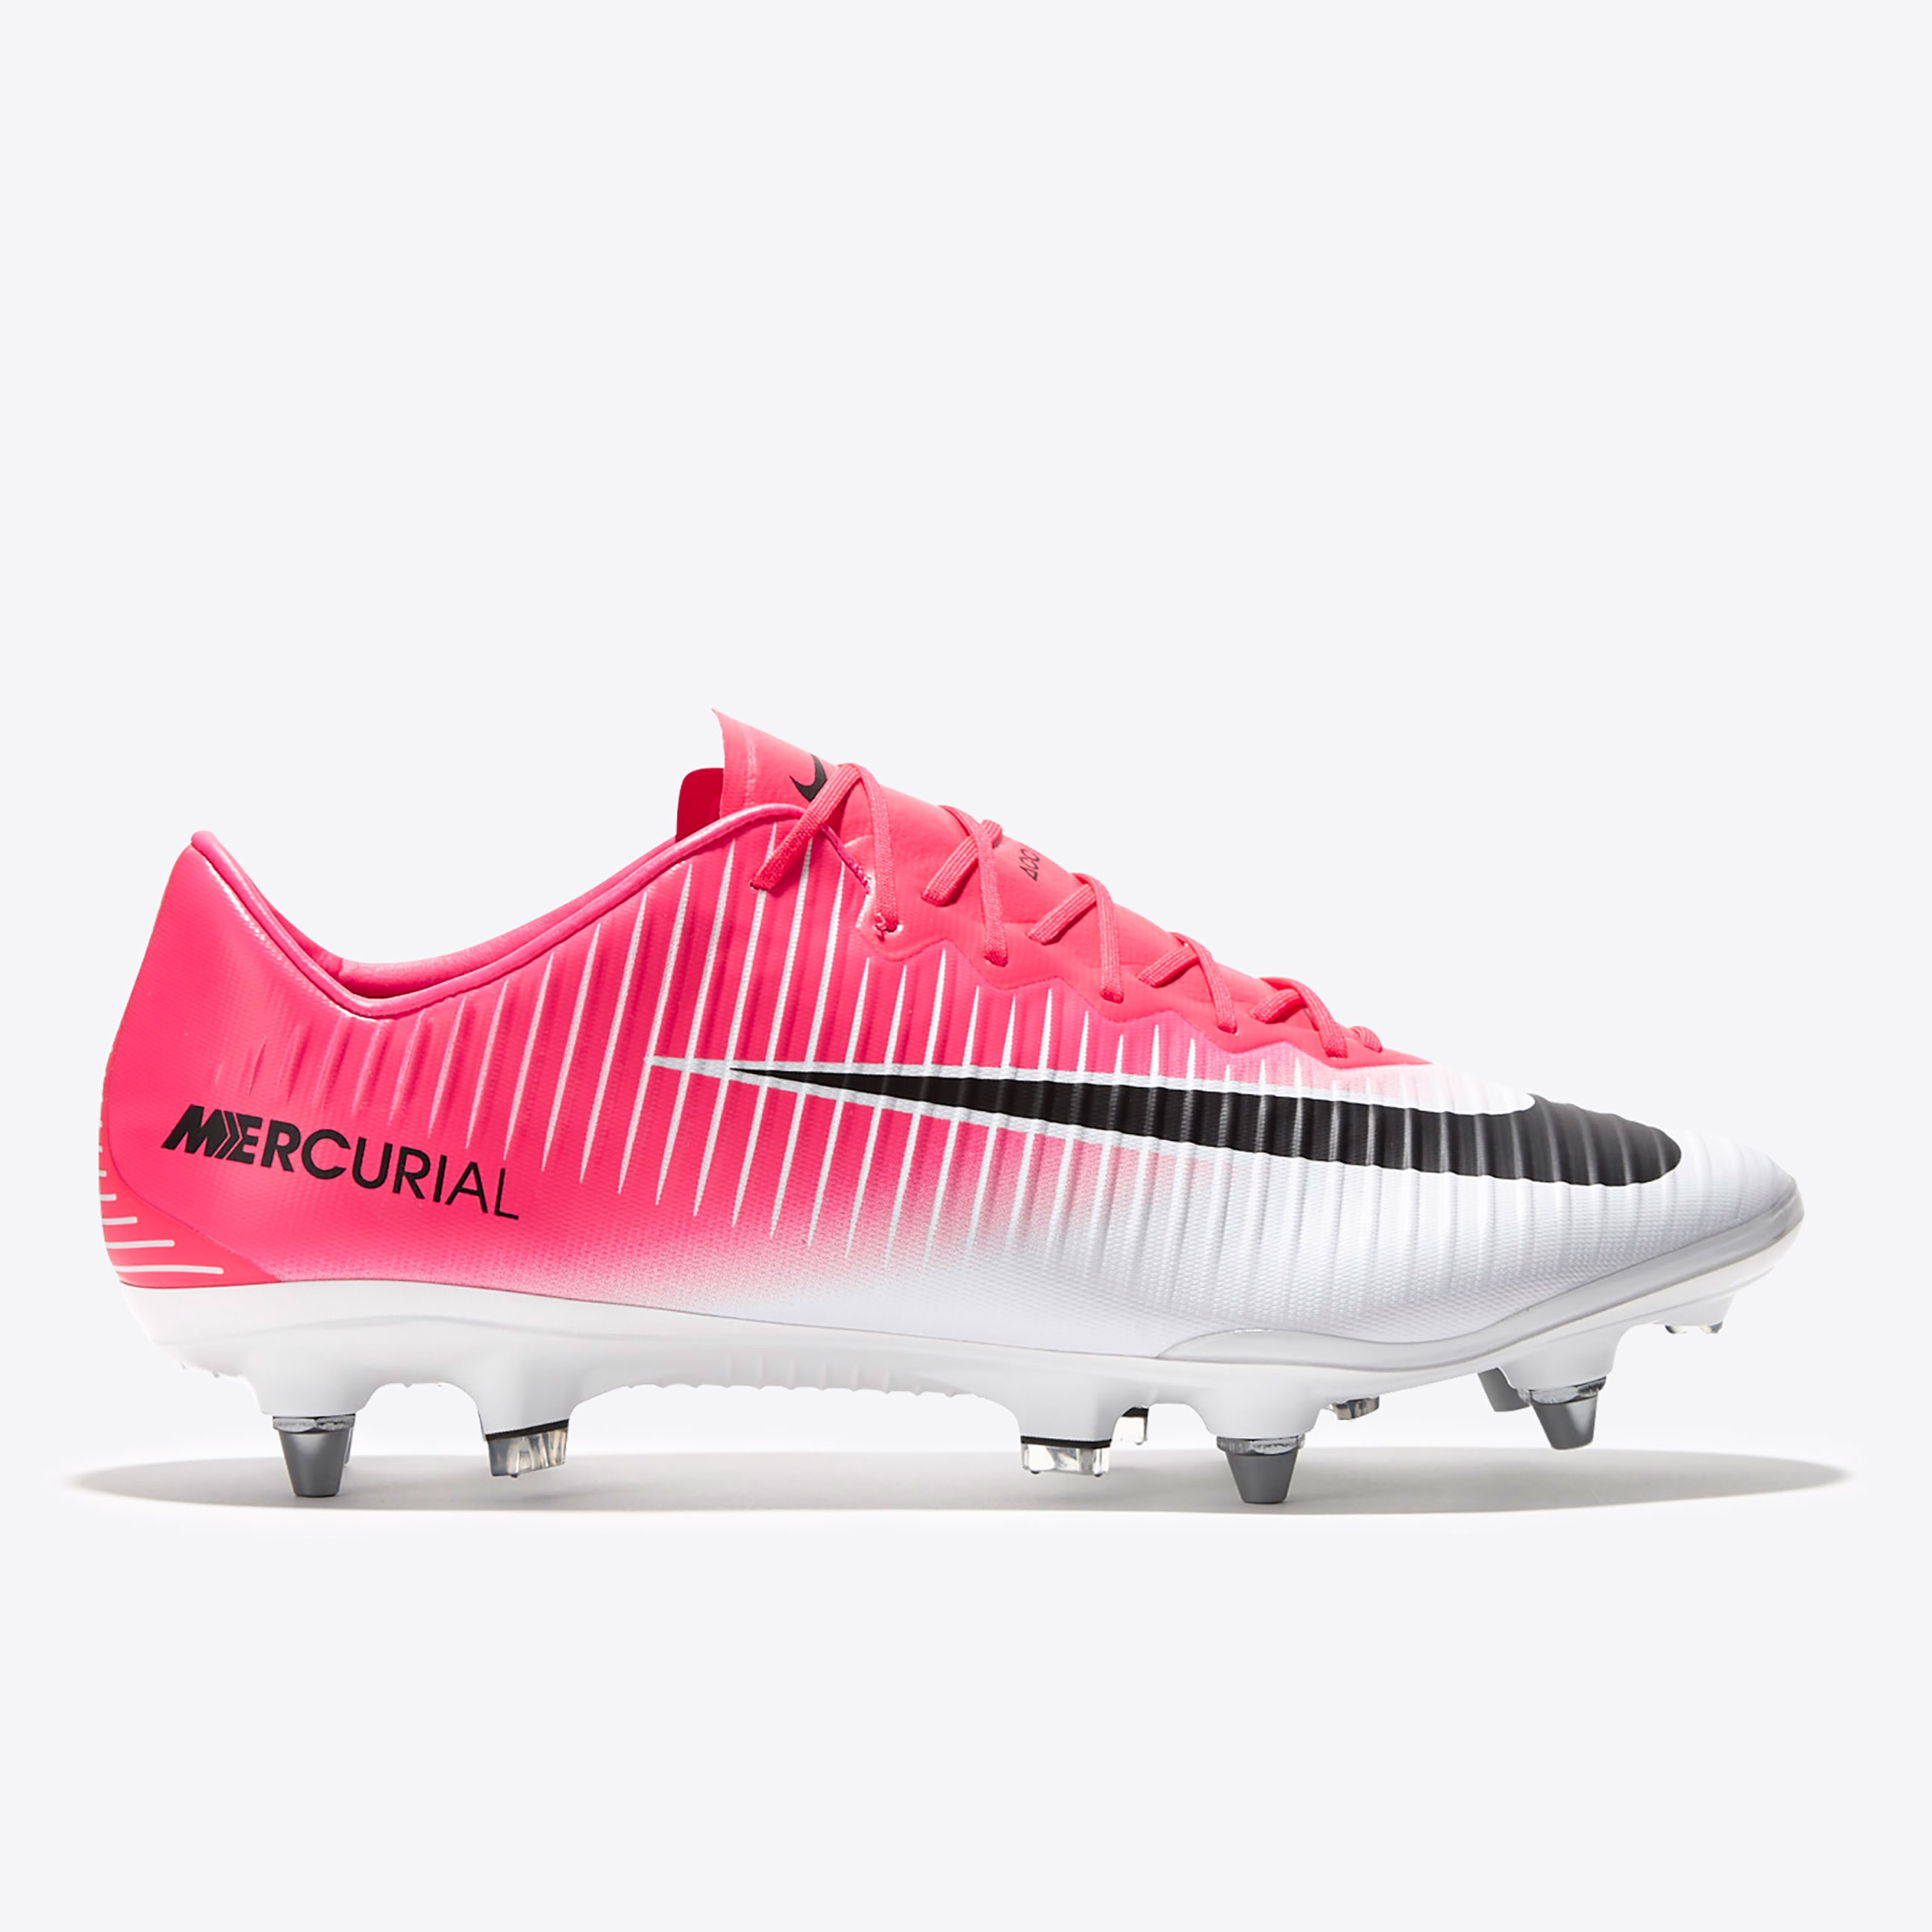 premium selection 6769e 53f51 Buy Nike Mercurial Superfly V & Vapor XI Rugby Boots ...